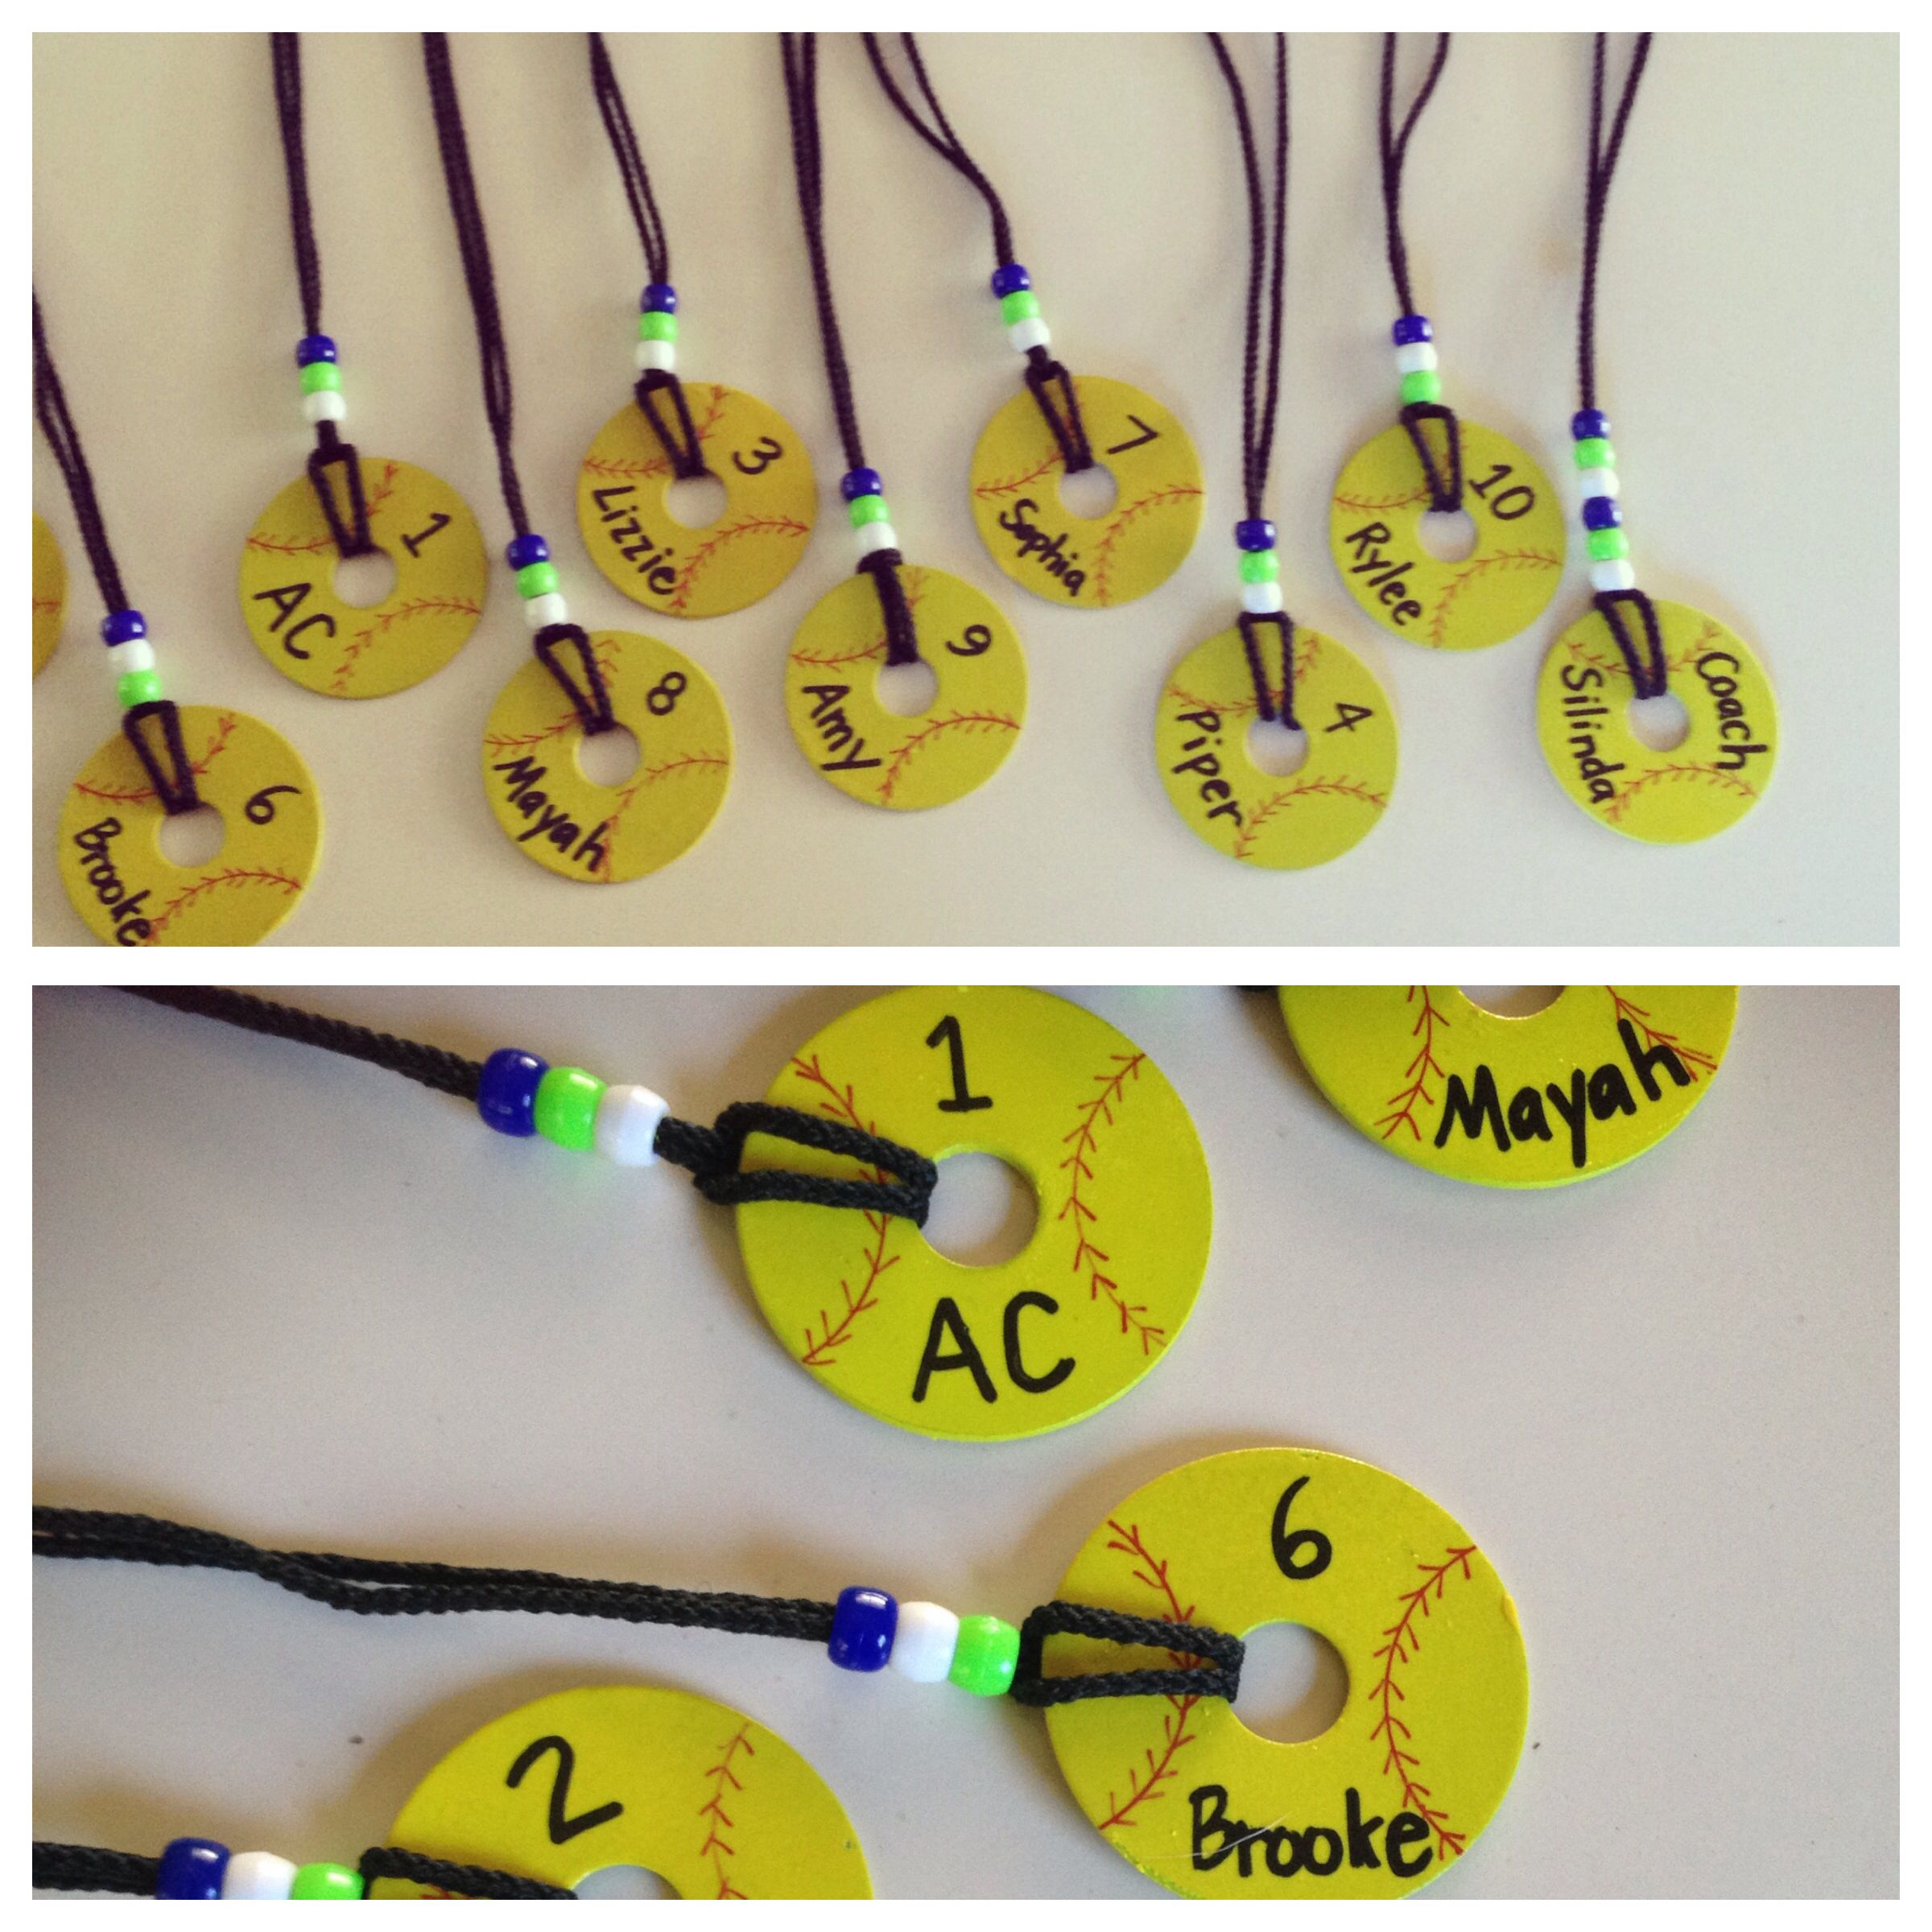 Easy DIY Softball team t necklaces Fender washers were 19¢ a